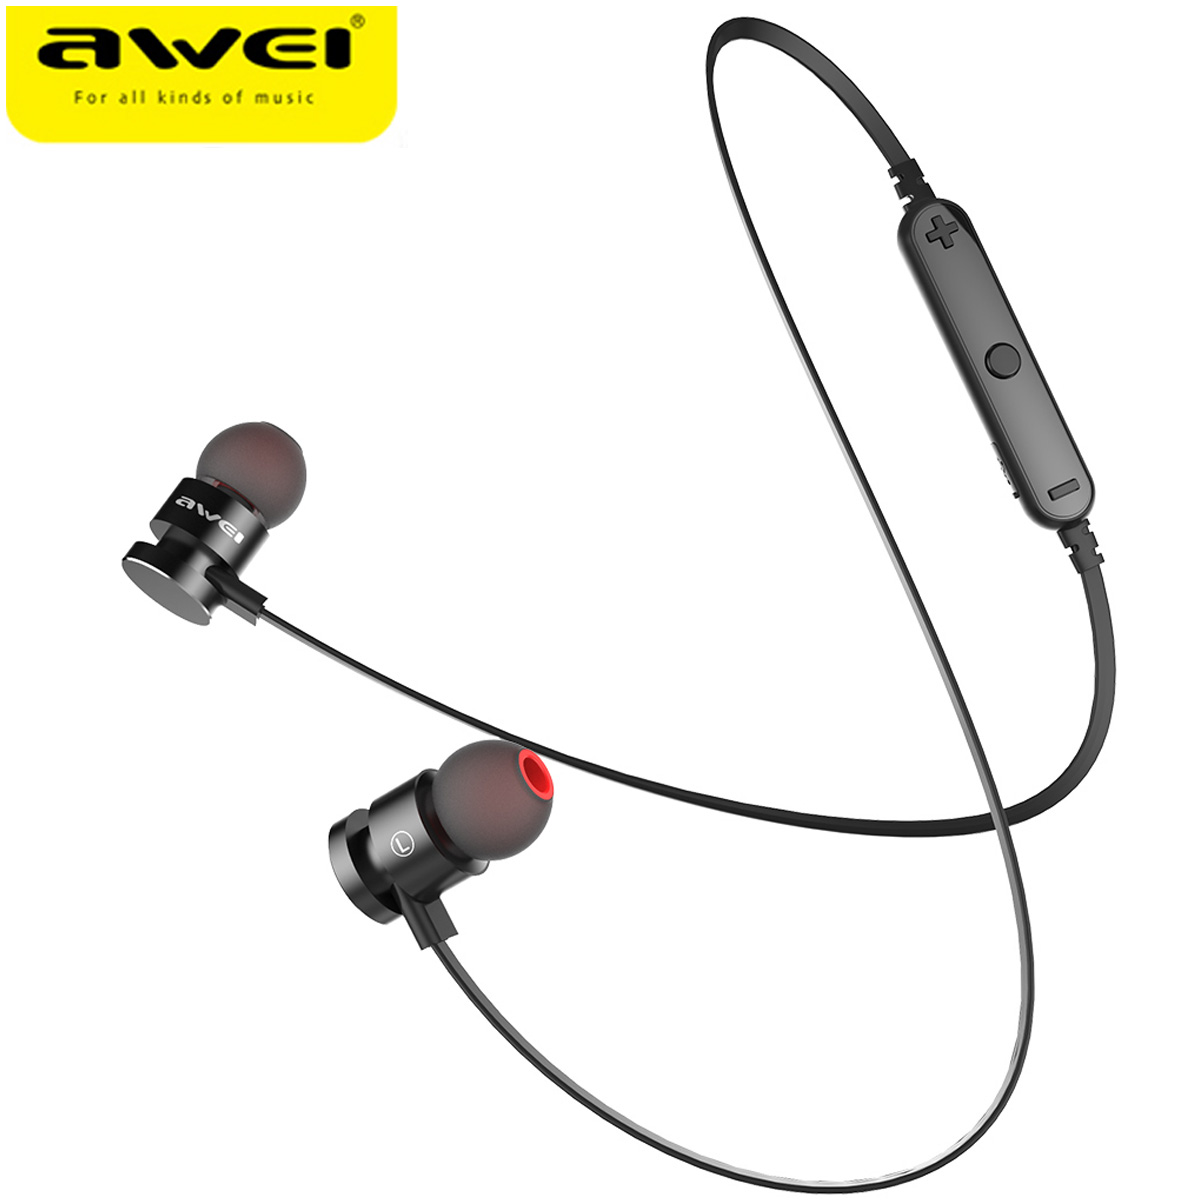 2017 Newest AWEI T11 Wireless Headphone Bluetooth Earphone Fone de ouvido For Phone Neckband Ecouteur Auriculares Bluetooth V4.2 wireless headphones bluetooth earphone sport fone de ouvido auriculares ecouteur audifonos kulaklik with nfc apt x